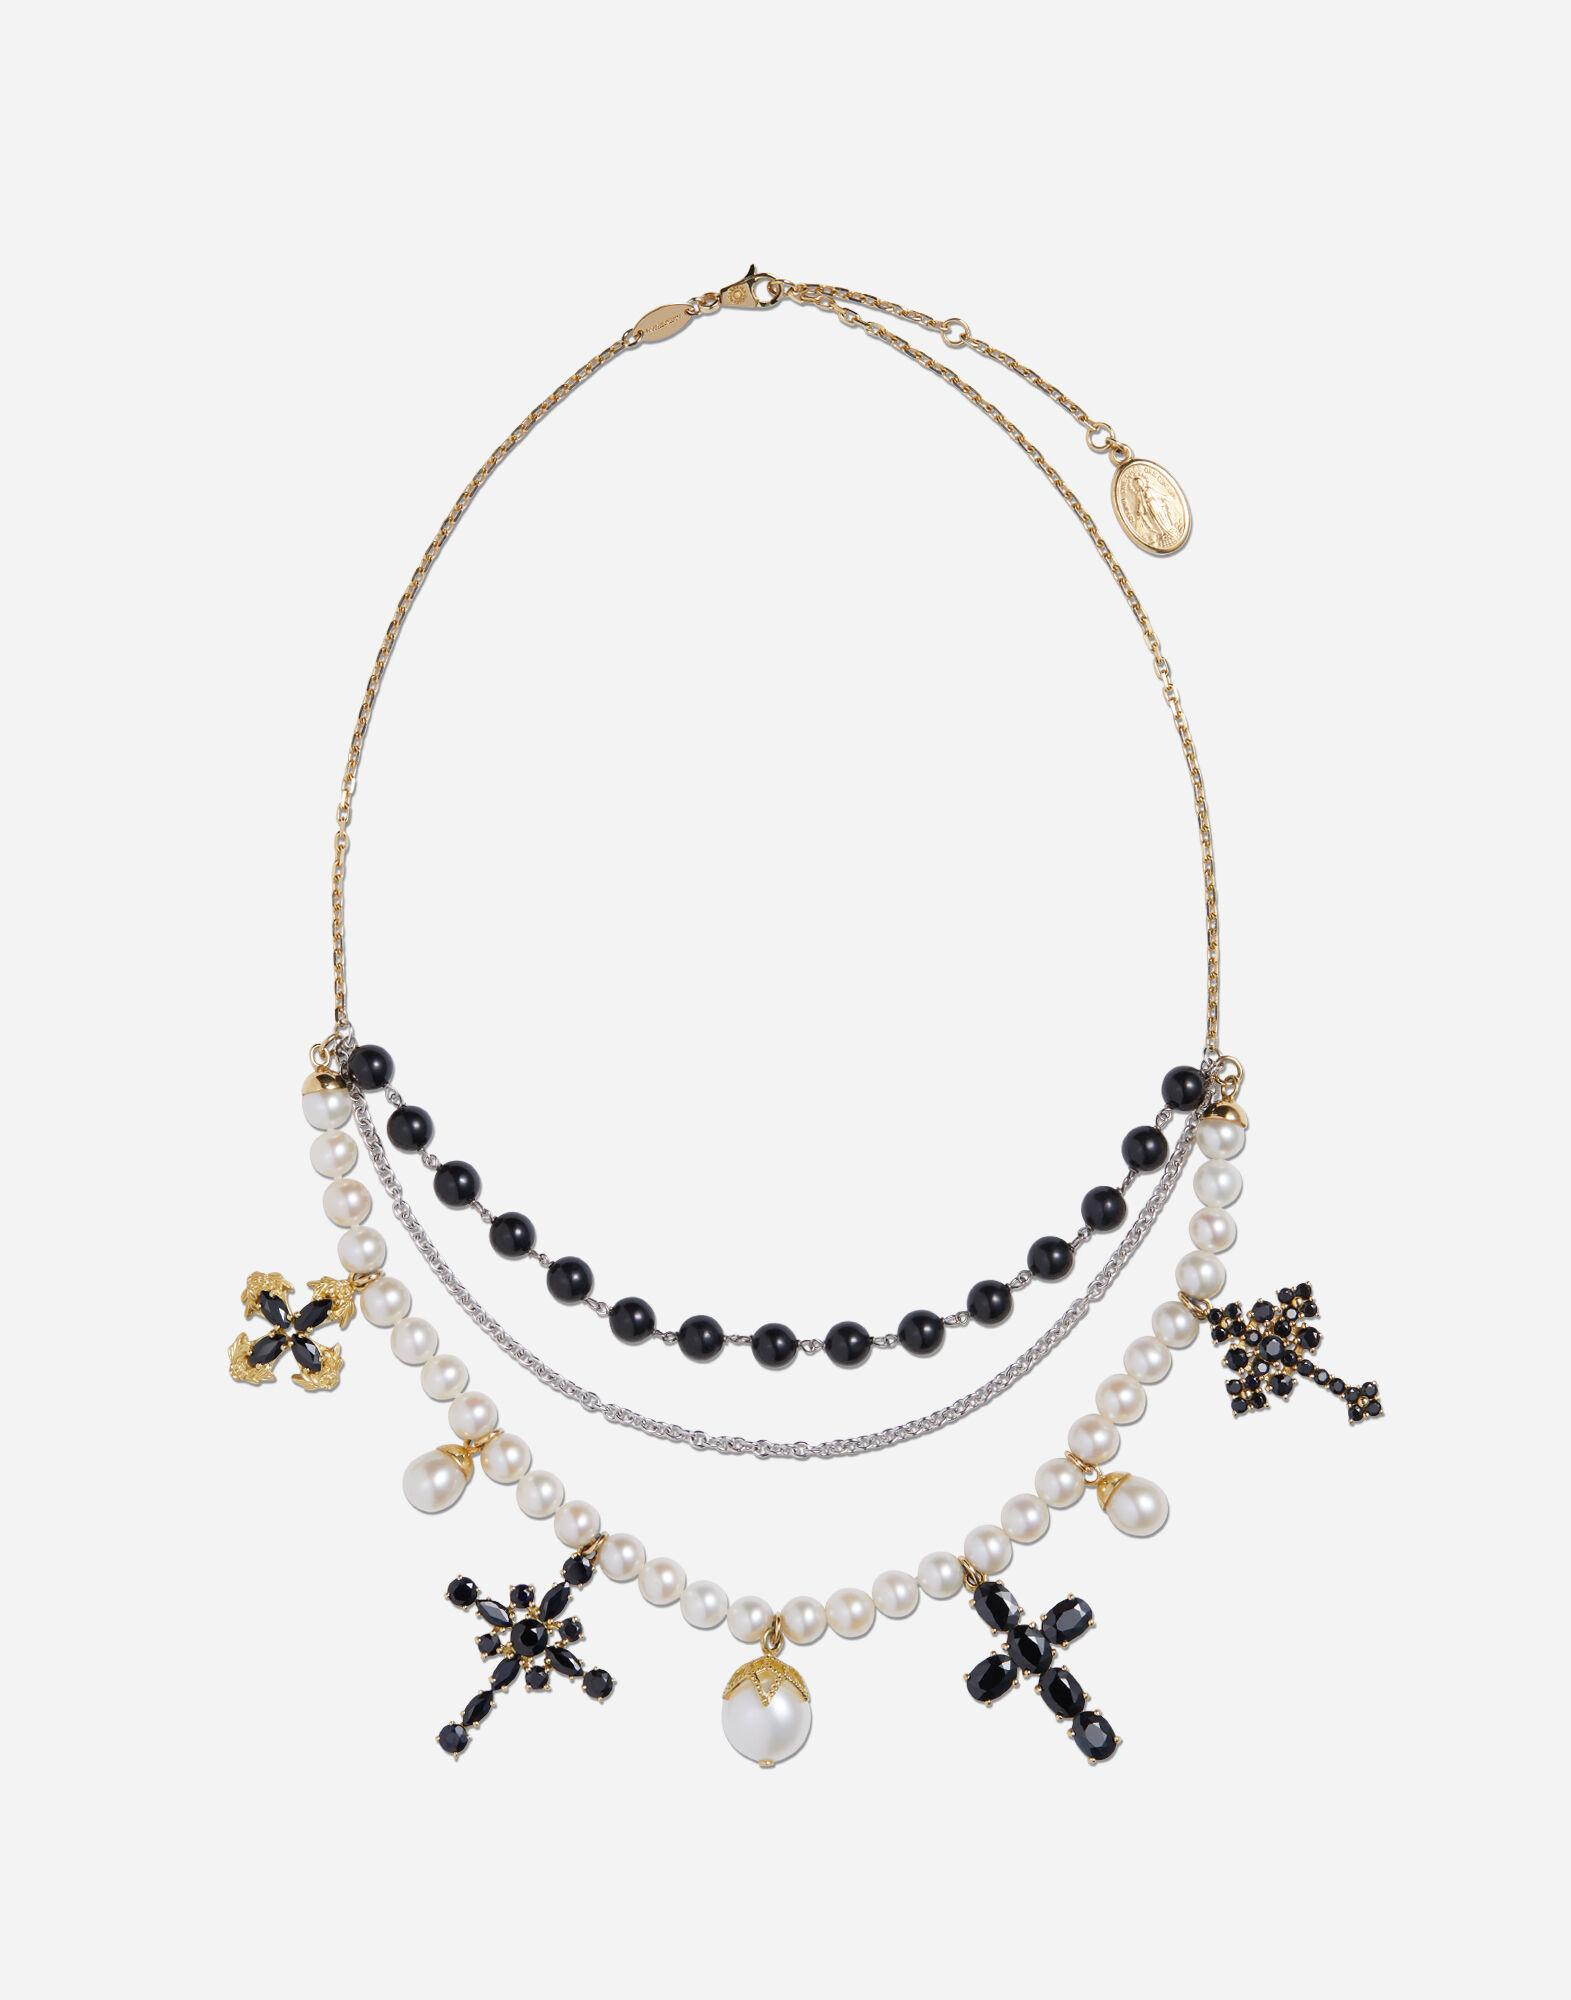 Family necklace in yellow and white gold black sapphires